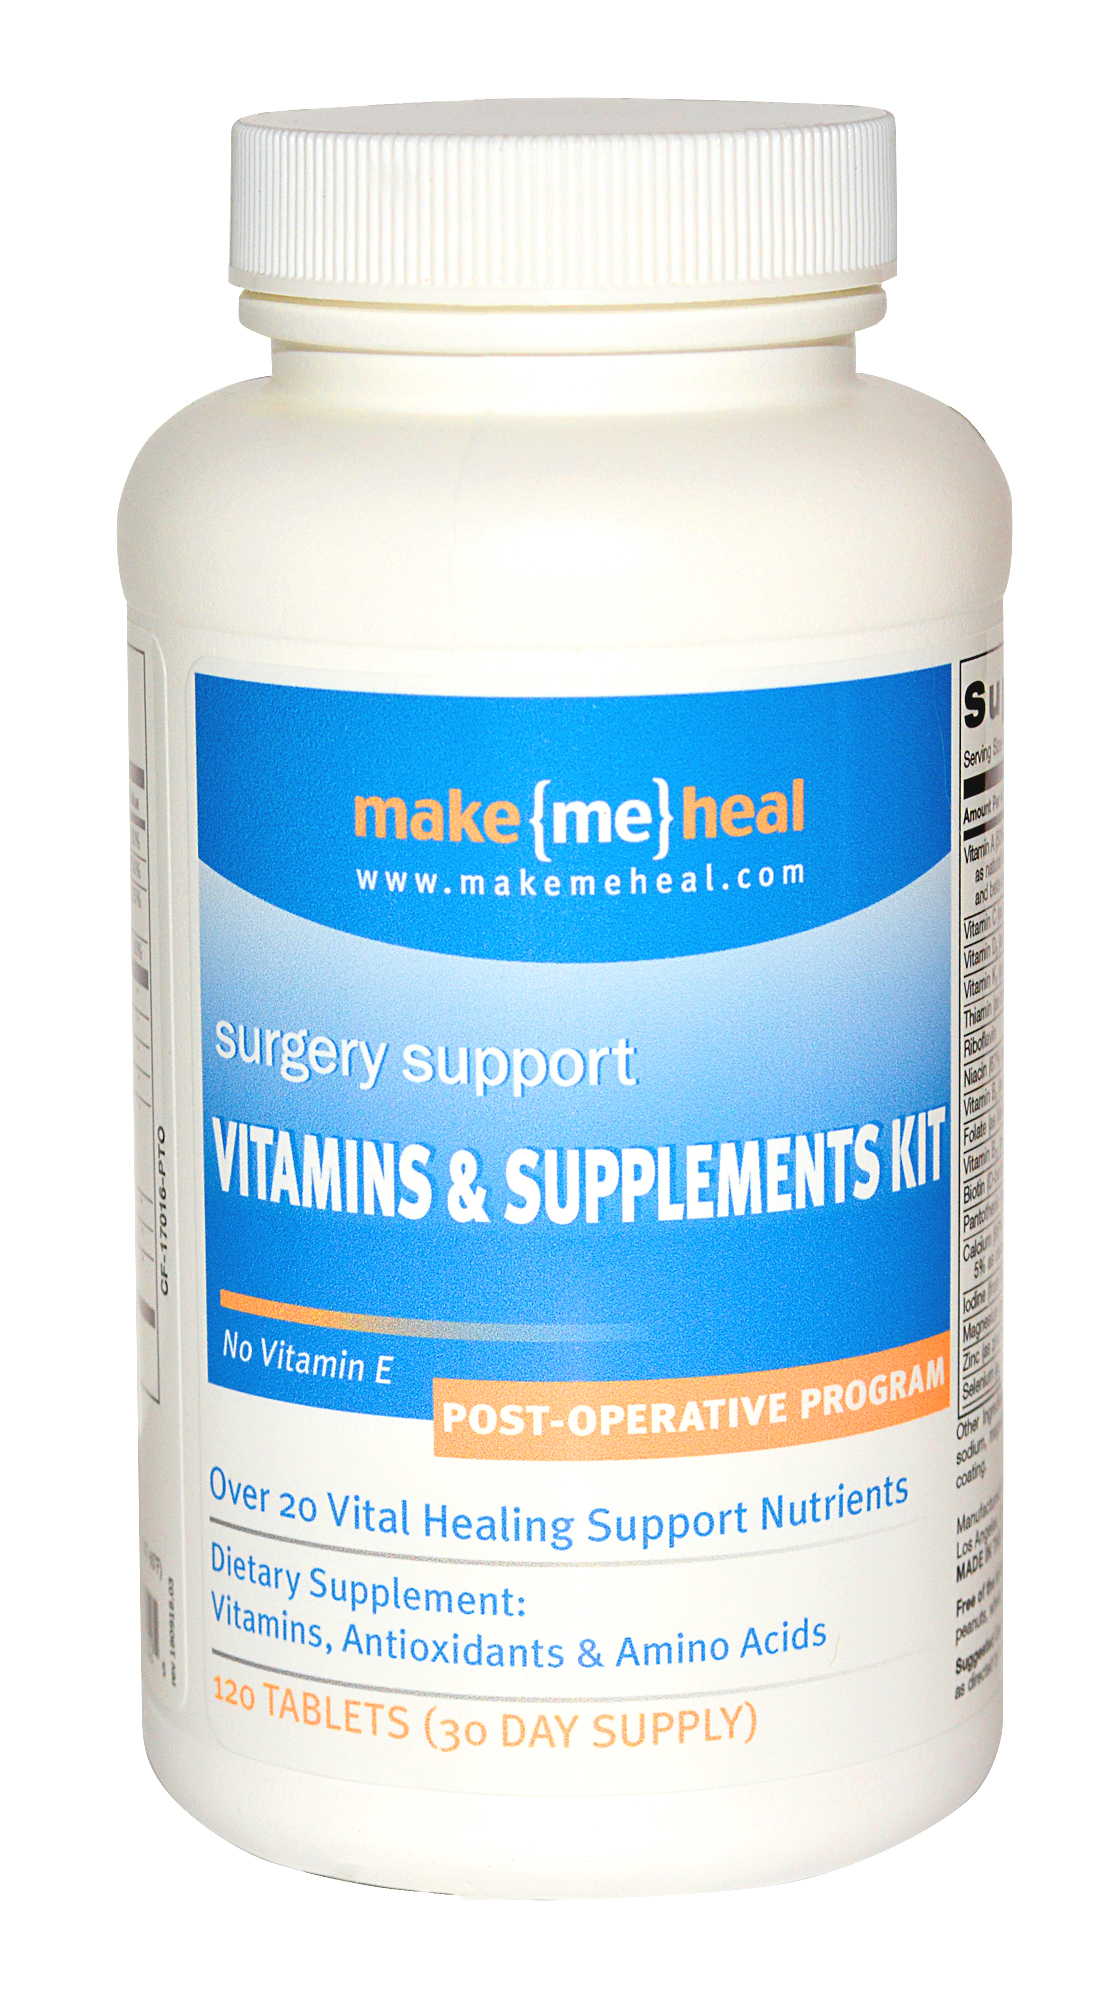 MakeMeHeal Plastic Surgery Healing Supplements & Vitamins - Post-Op Formula (w/Bromelain) - 30 Day